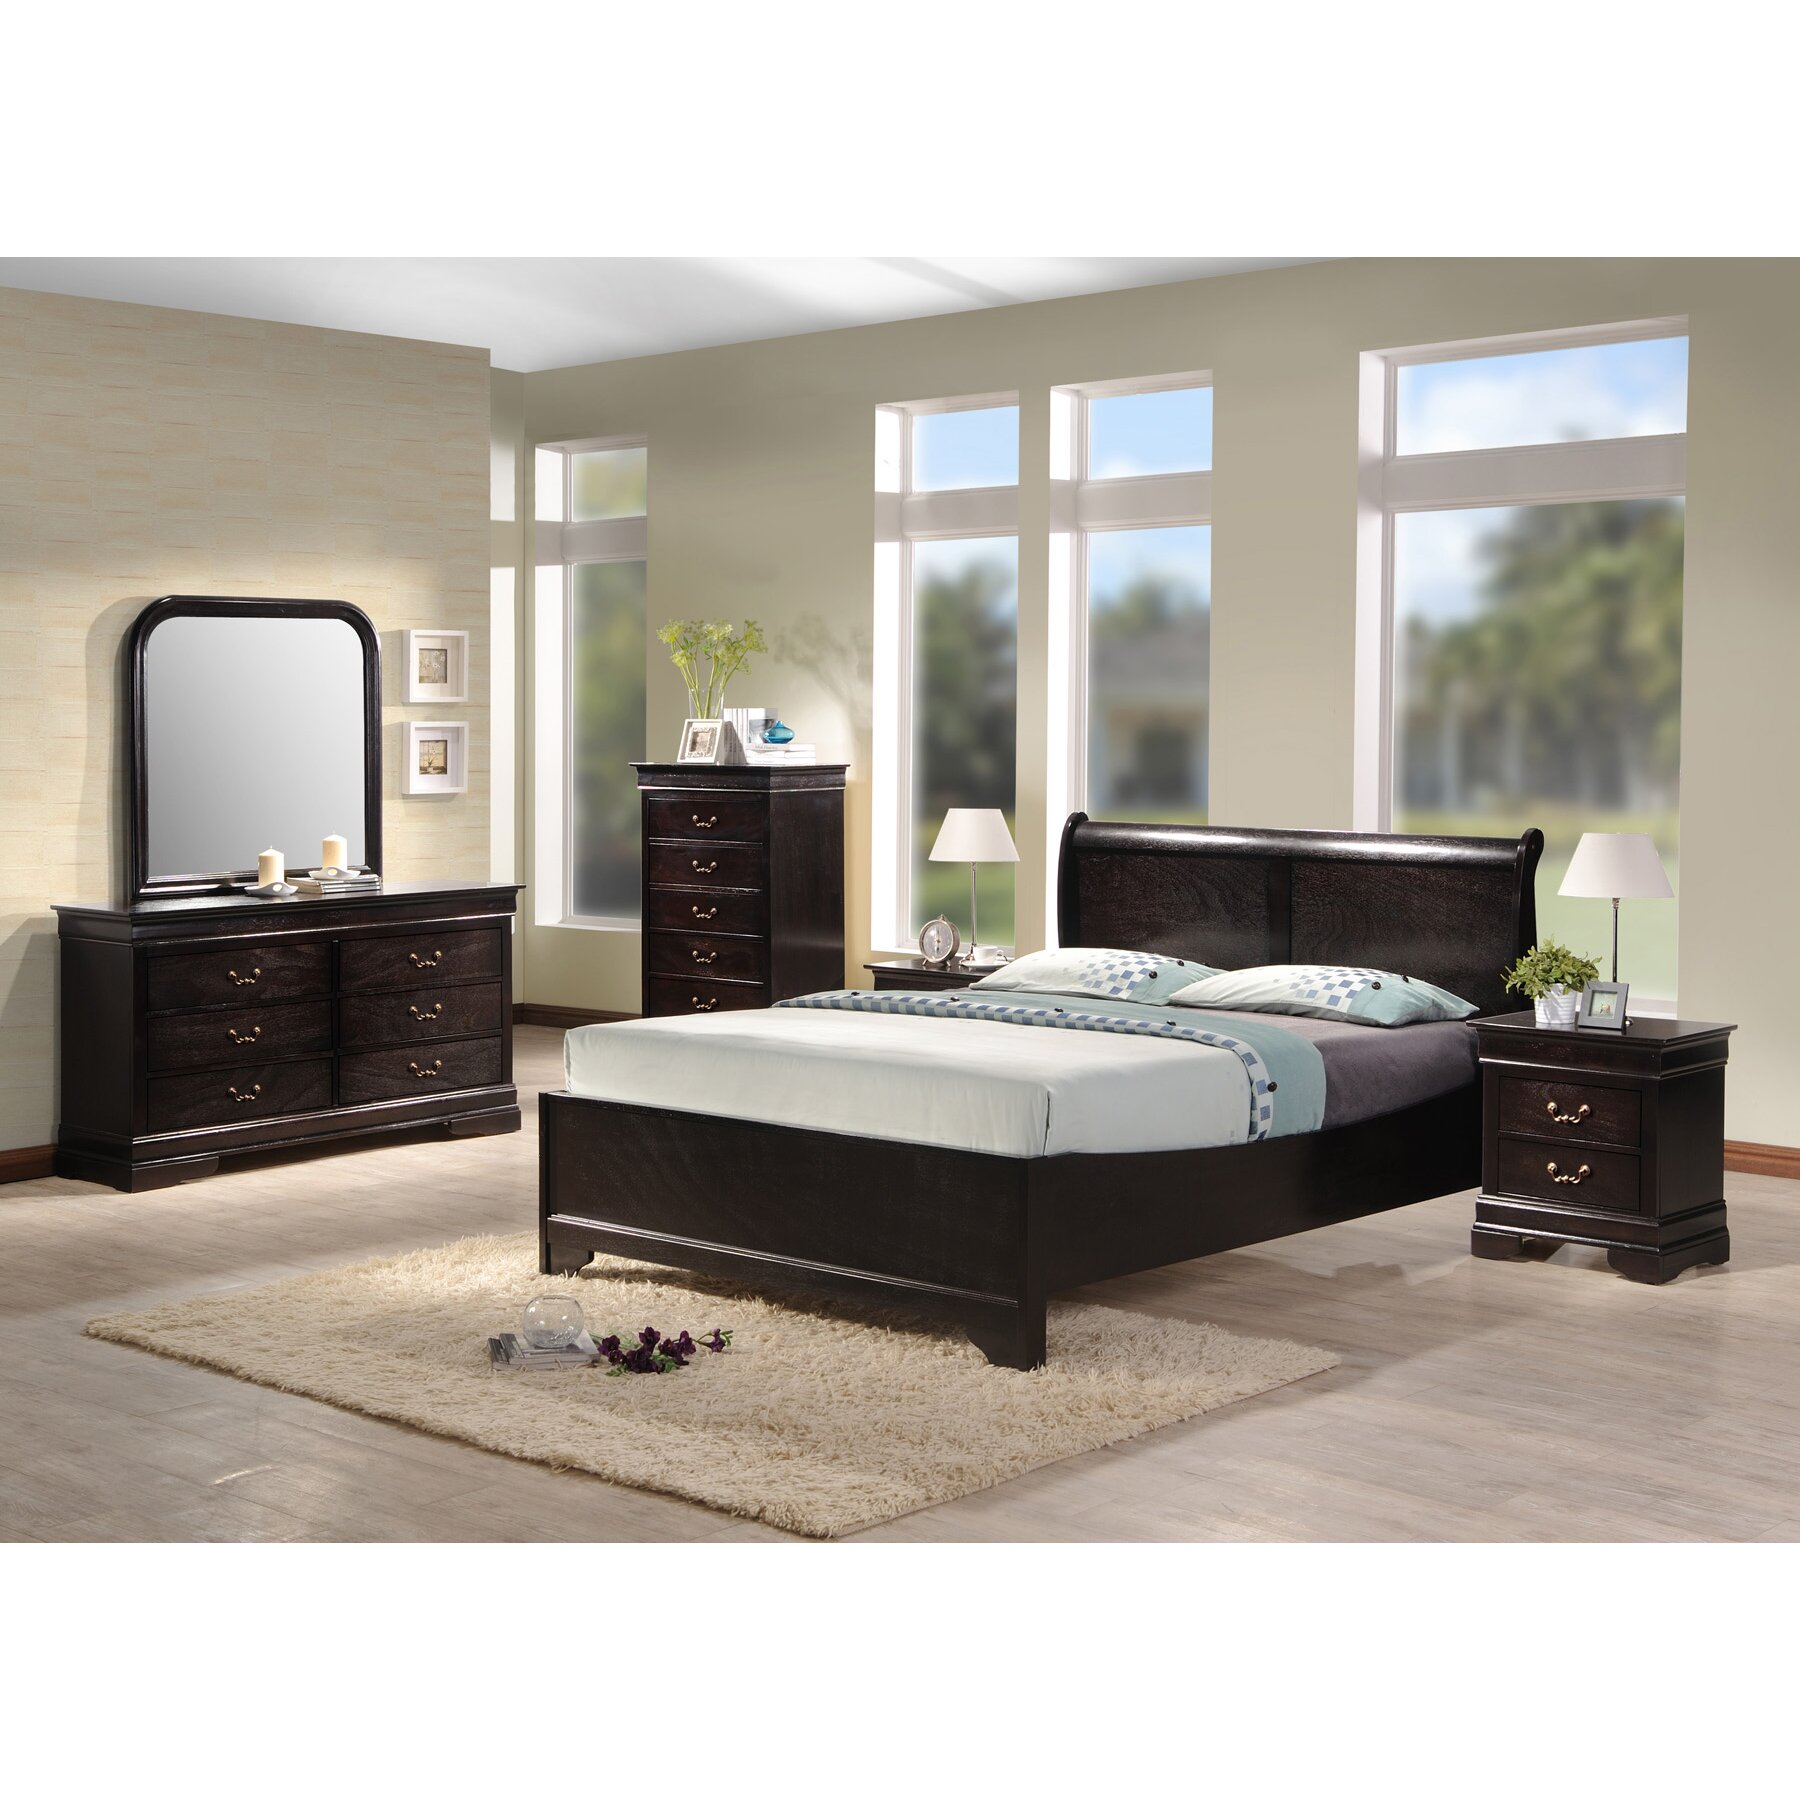 Best quality furniture panel customizable bedroom set for Best quality furniture